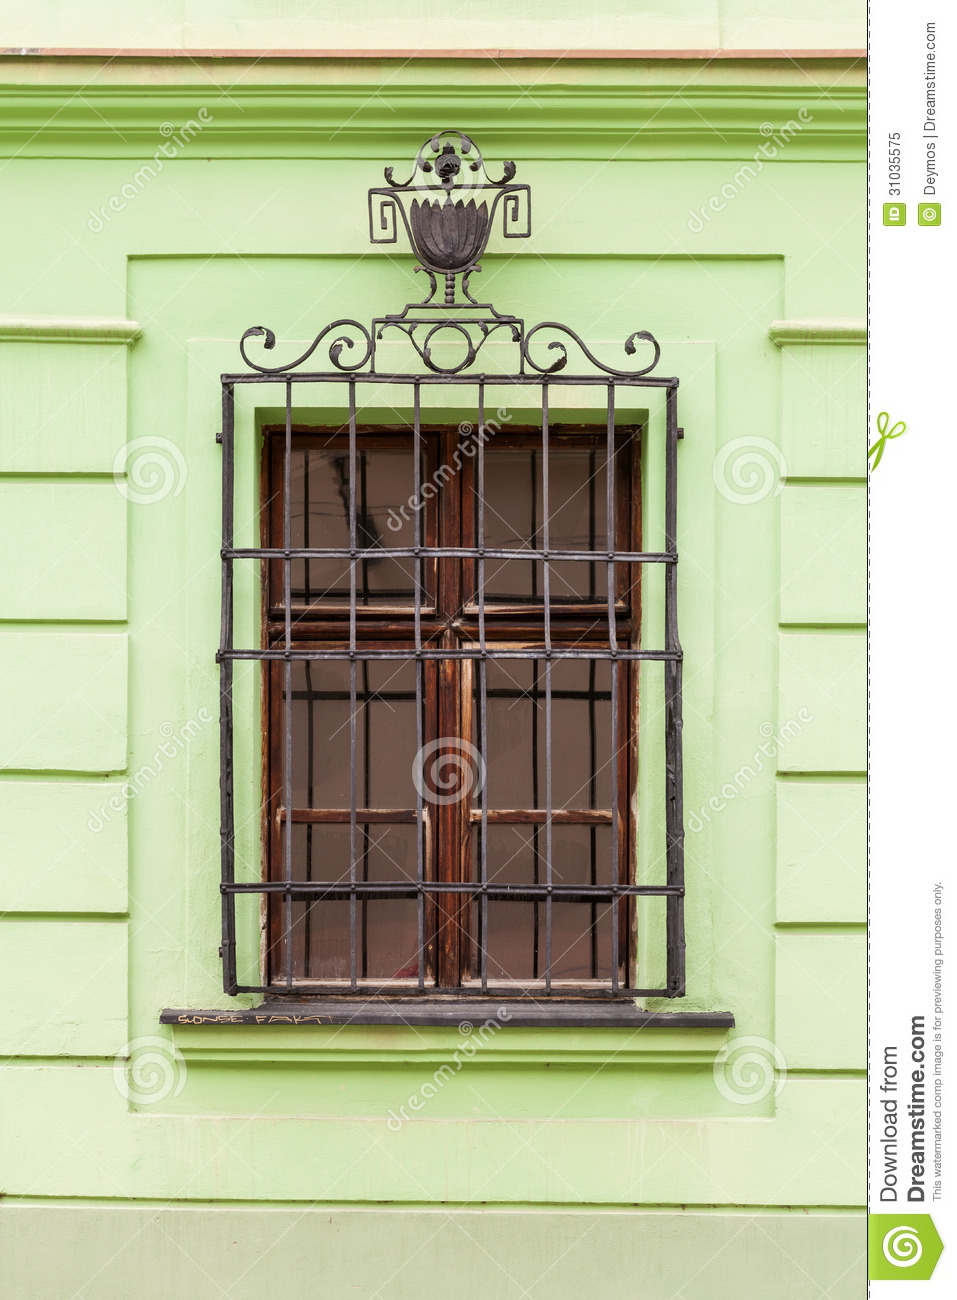 Window With Metal Security Bars Royalty Free Stock Photo